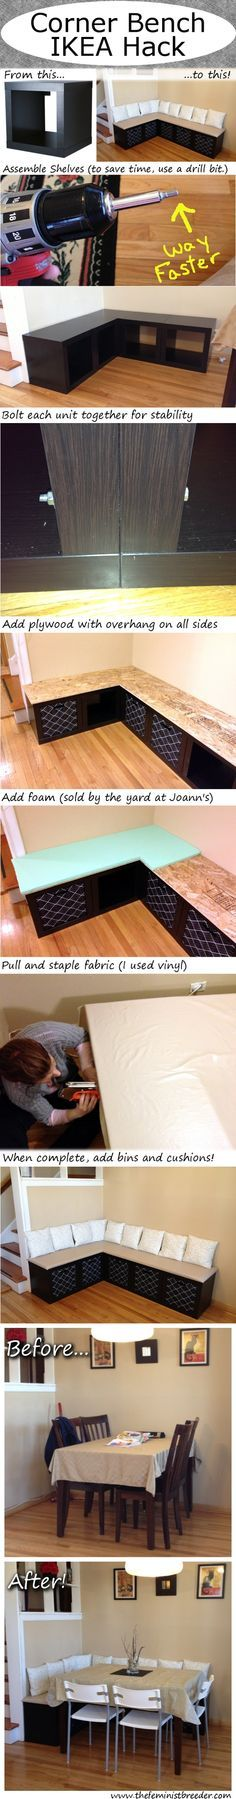 A corner bench with storage made from some IKEA wall shelves and a little upholstering. All done in less than one day..